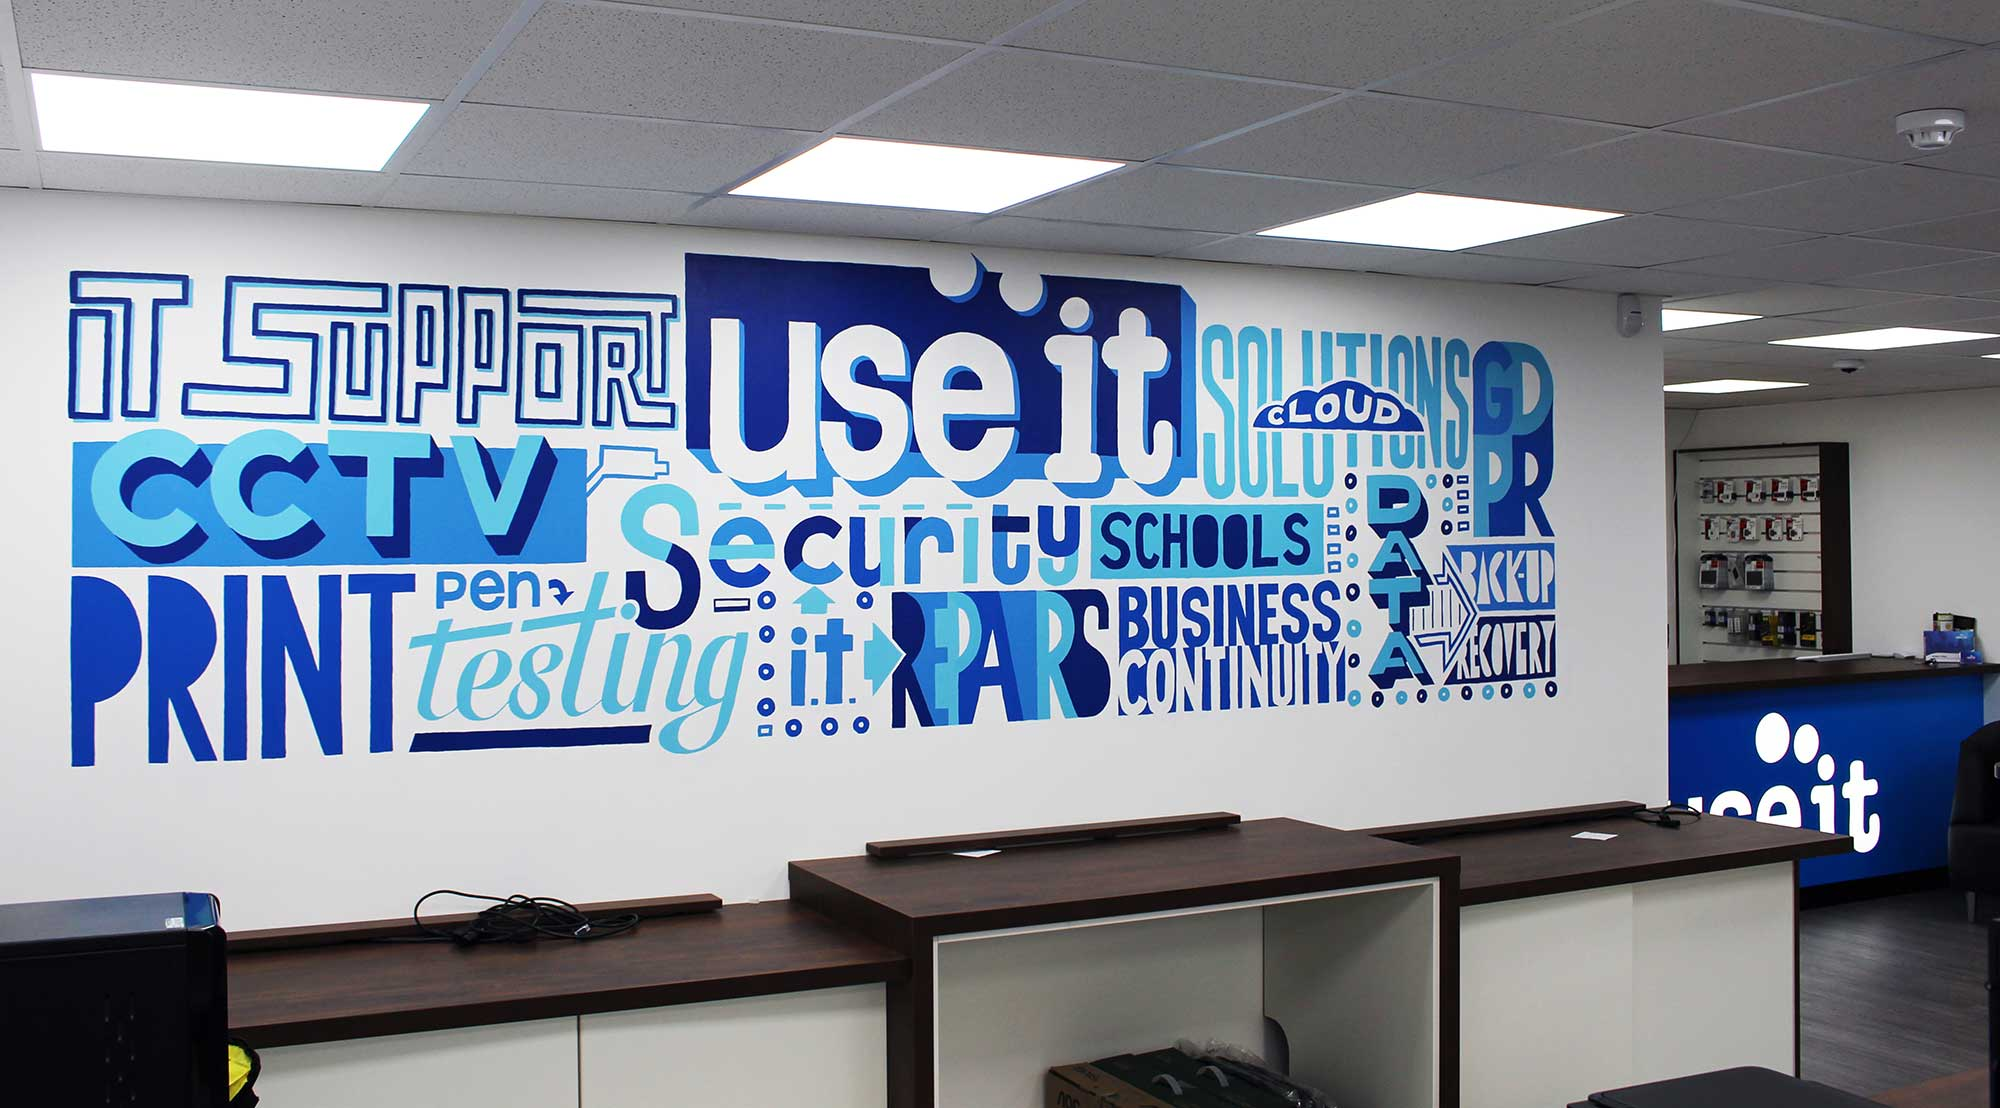 Use IT Bespoke Wall Mural Commission Hand-painted wall murals by Sketchbook Design